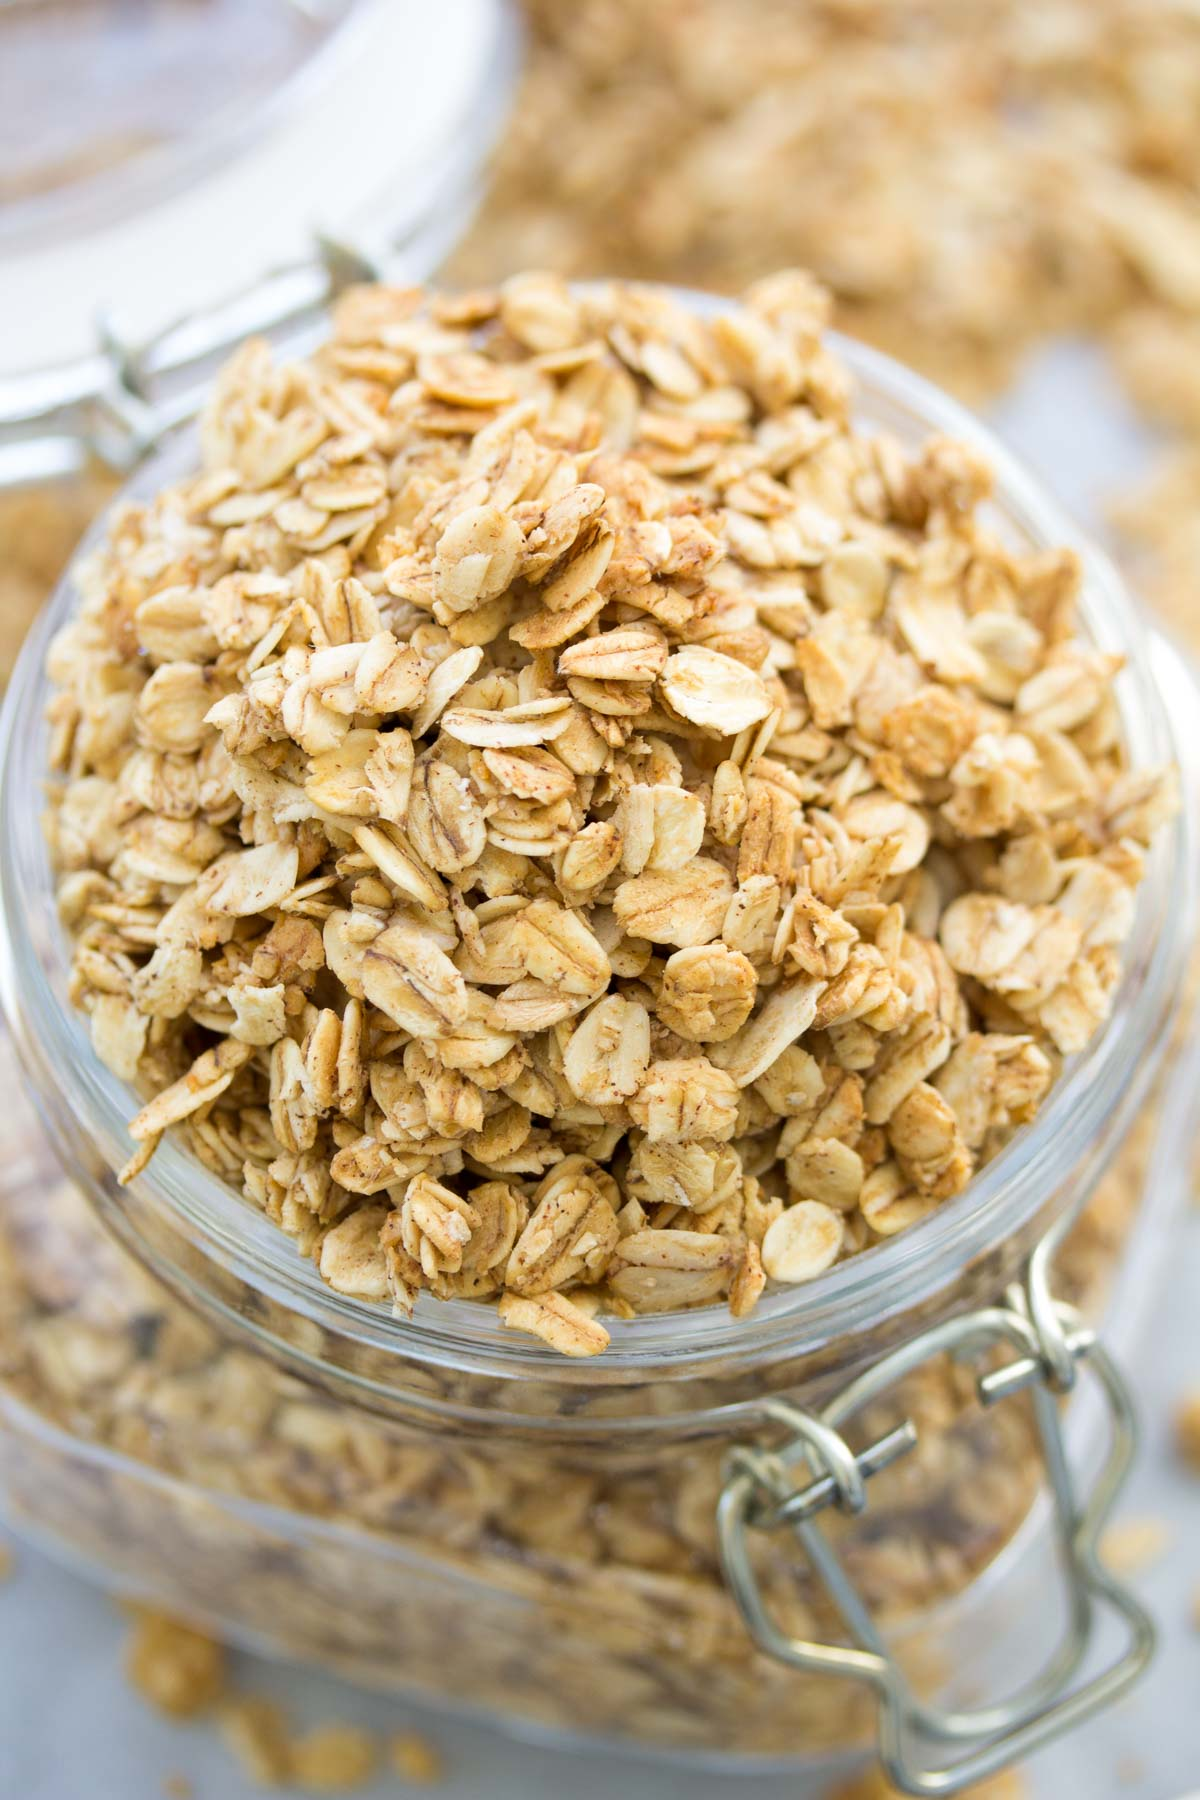 This simple homemade granola is deliciously crunchy! We make this 4 ...